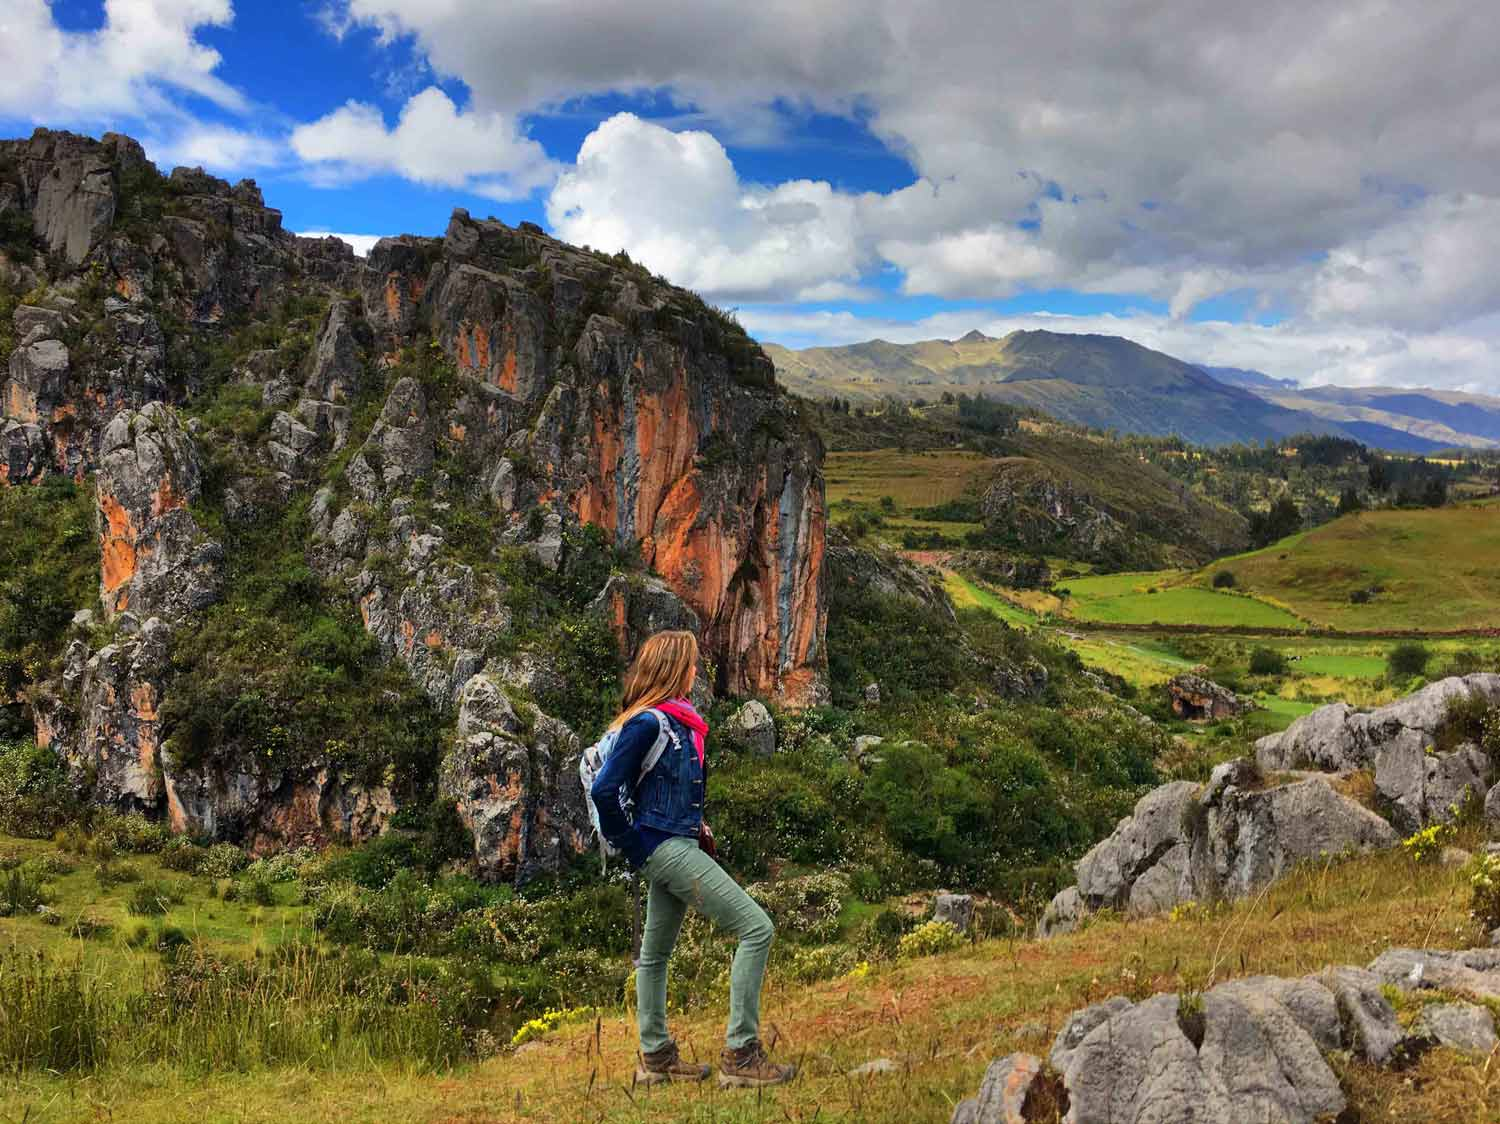 Marlee in Cusco's countryside during the Immersion.